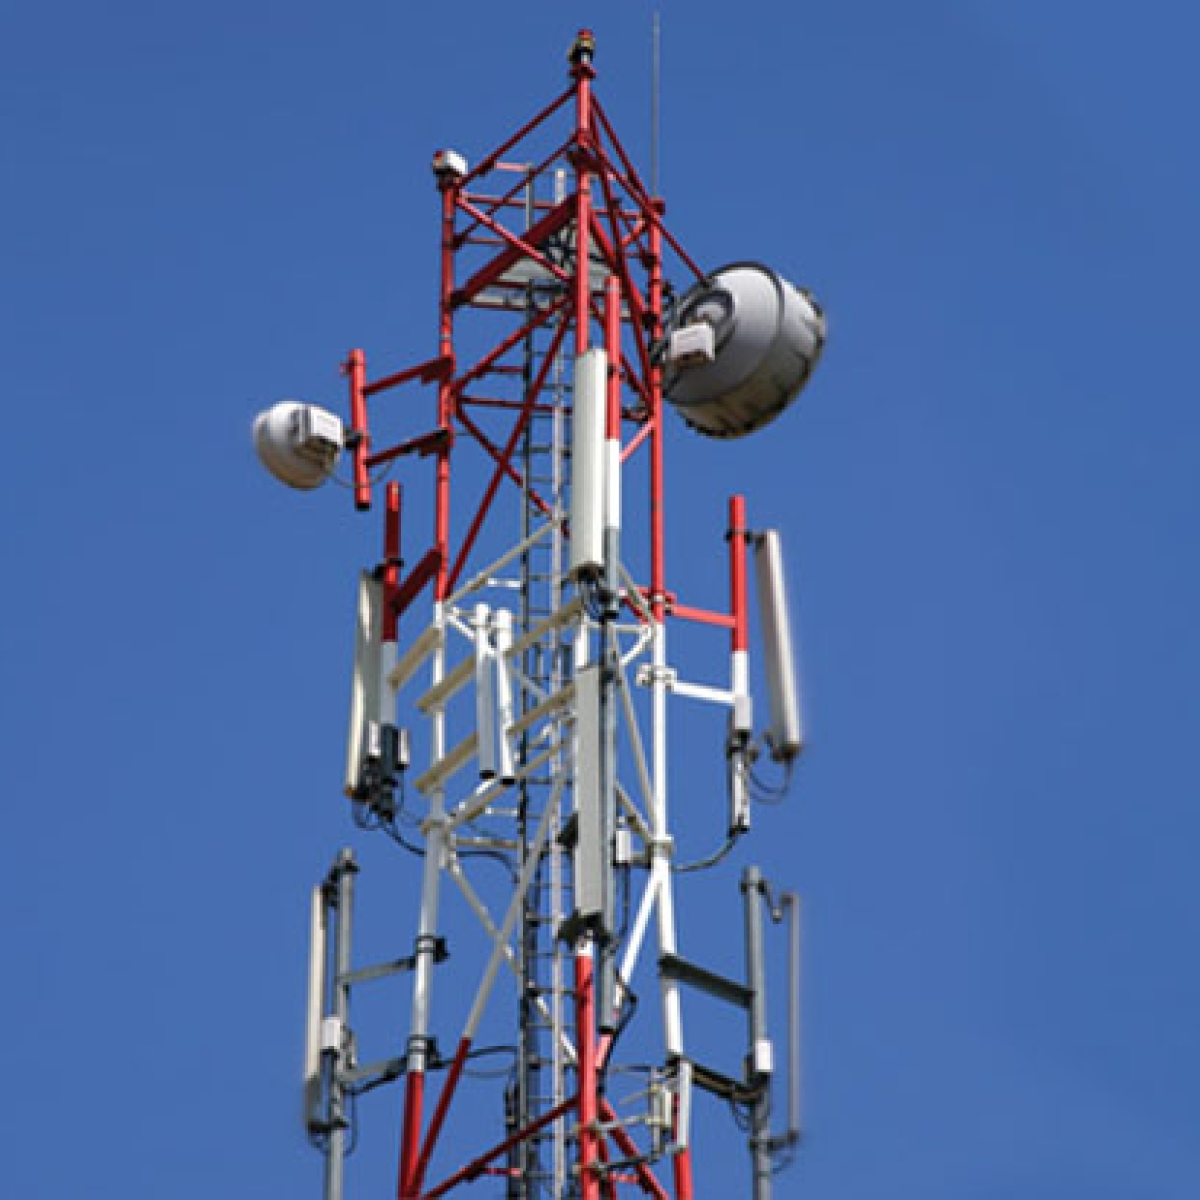 With telecom tower frauds on the rise, beware of people offering high rent to set up a tower